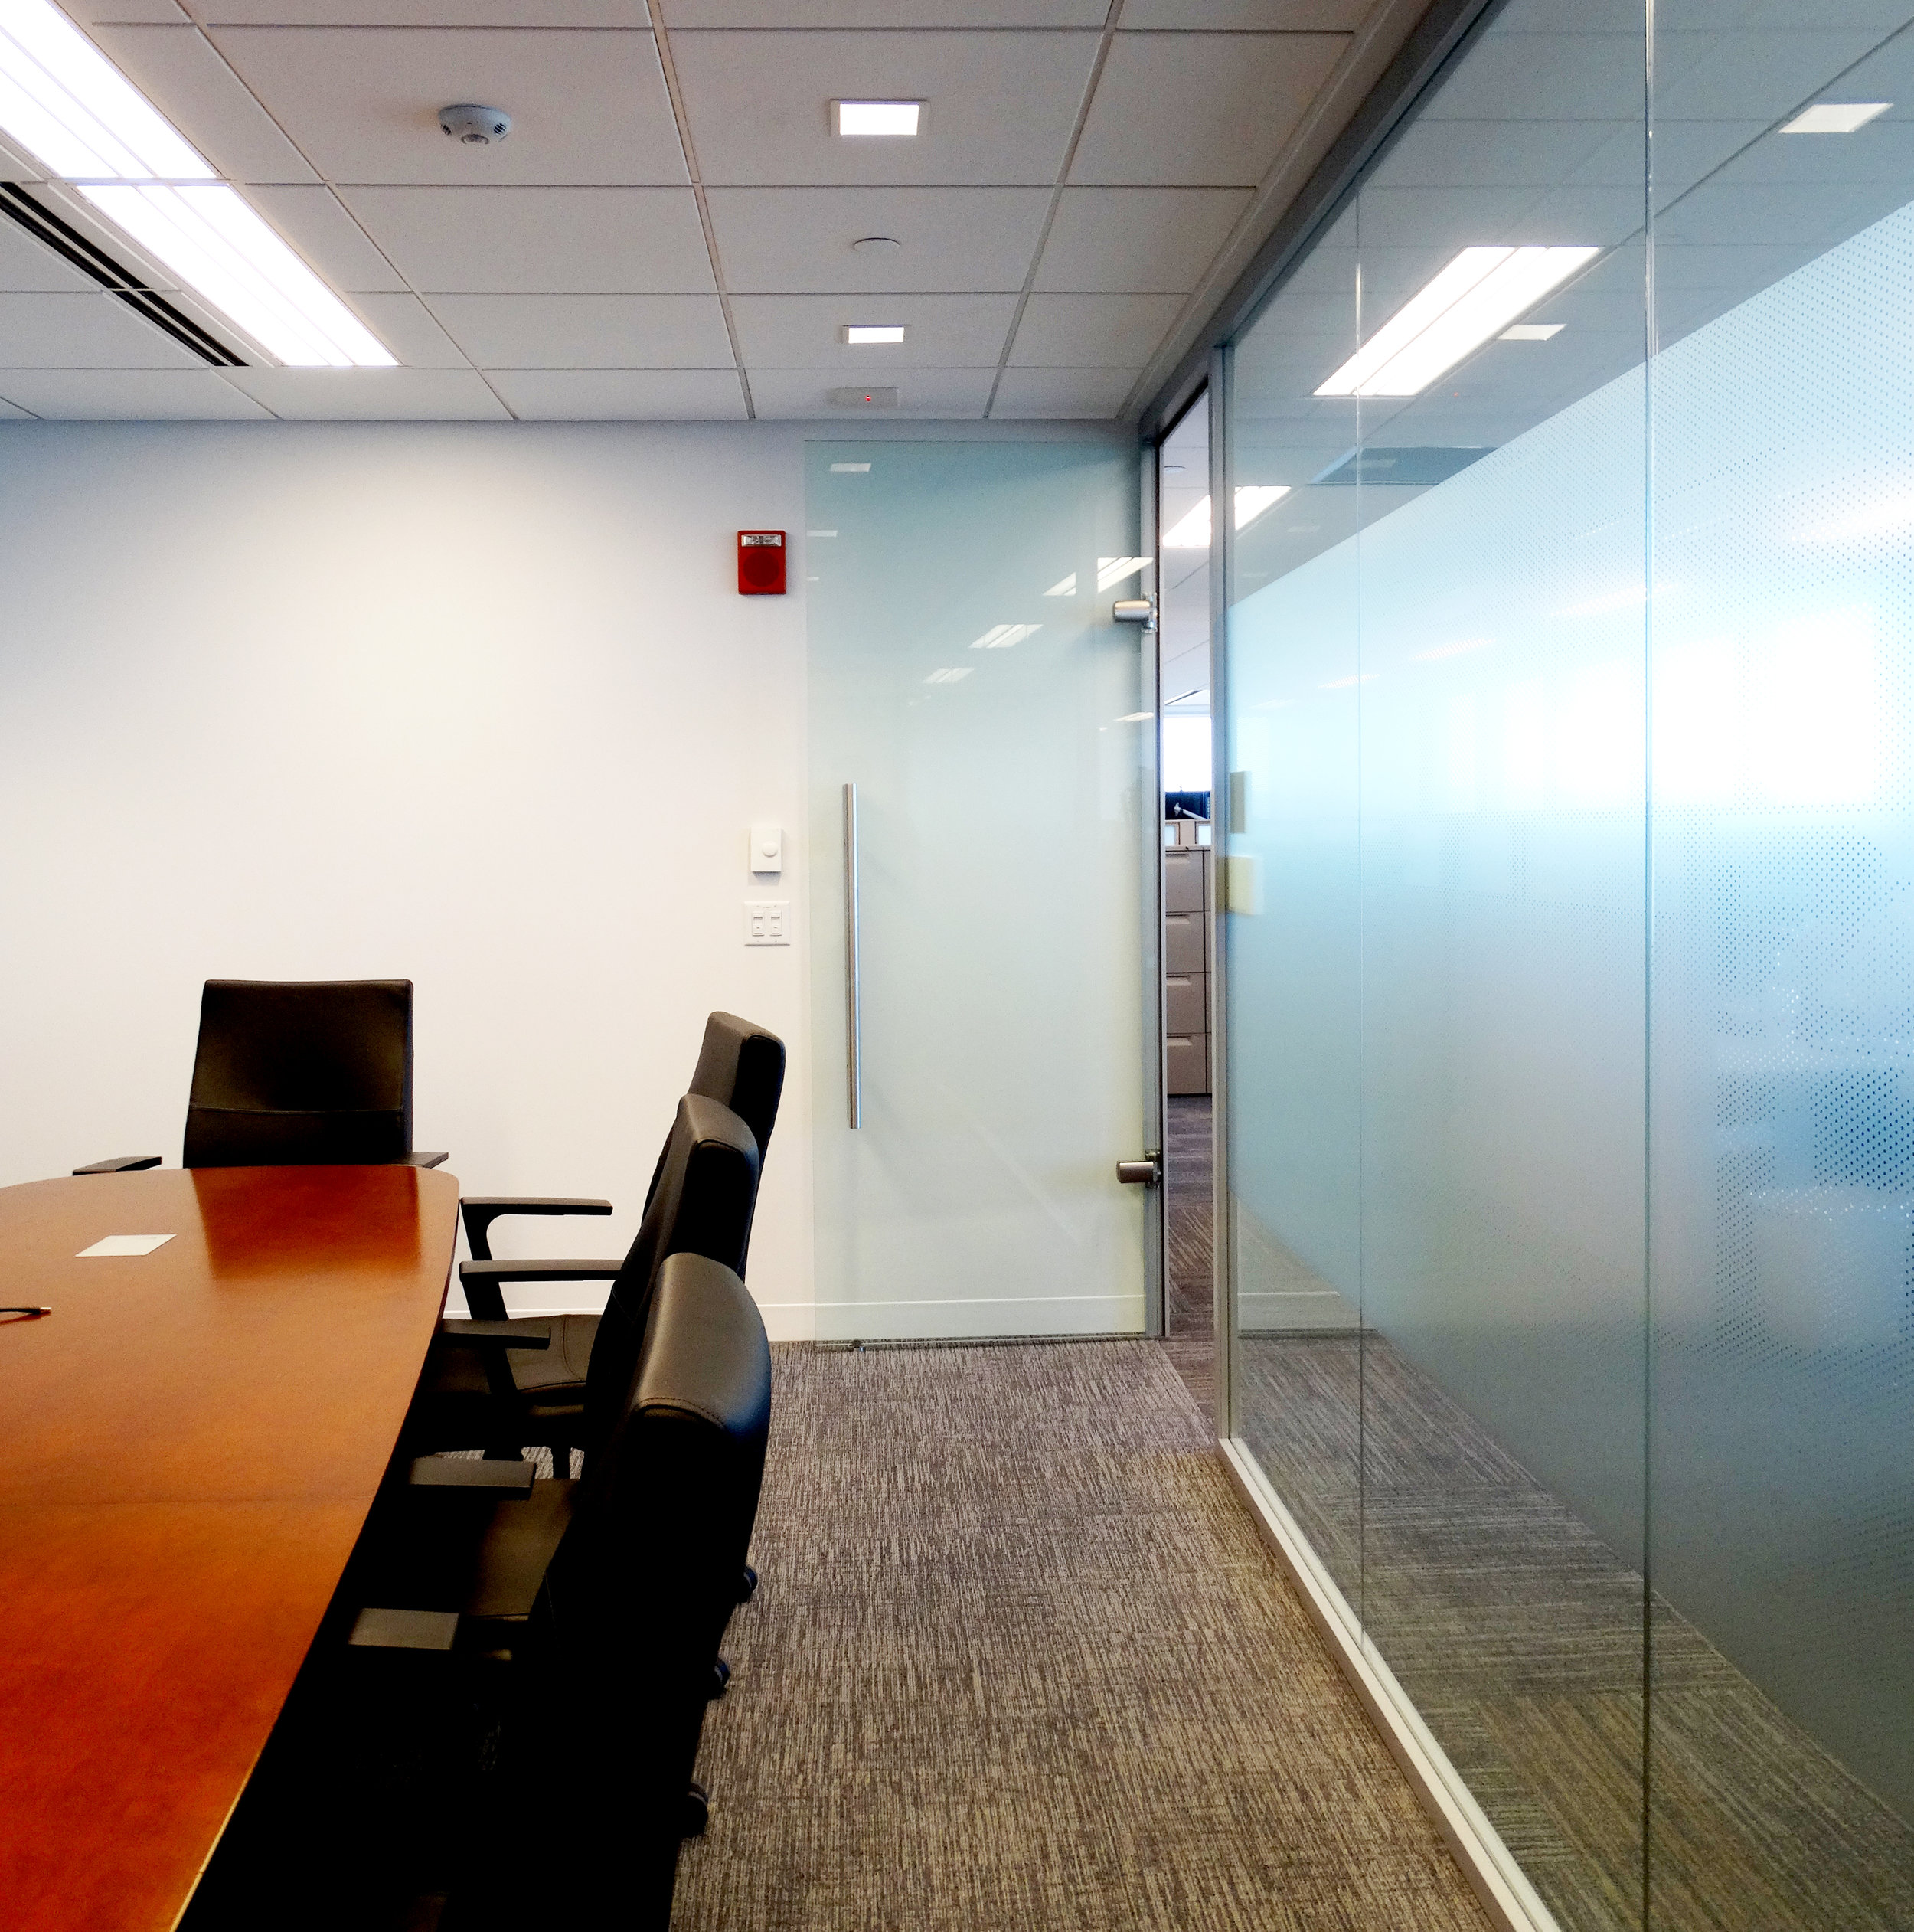 Litespace Demountable Glass Conference Room Wall - Spaceworks AI.jpg